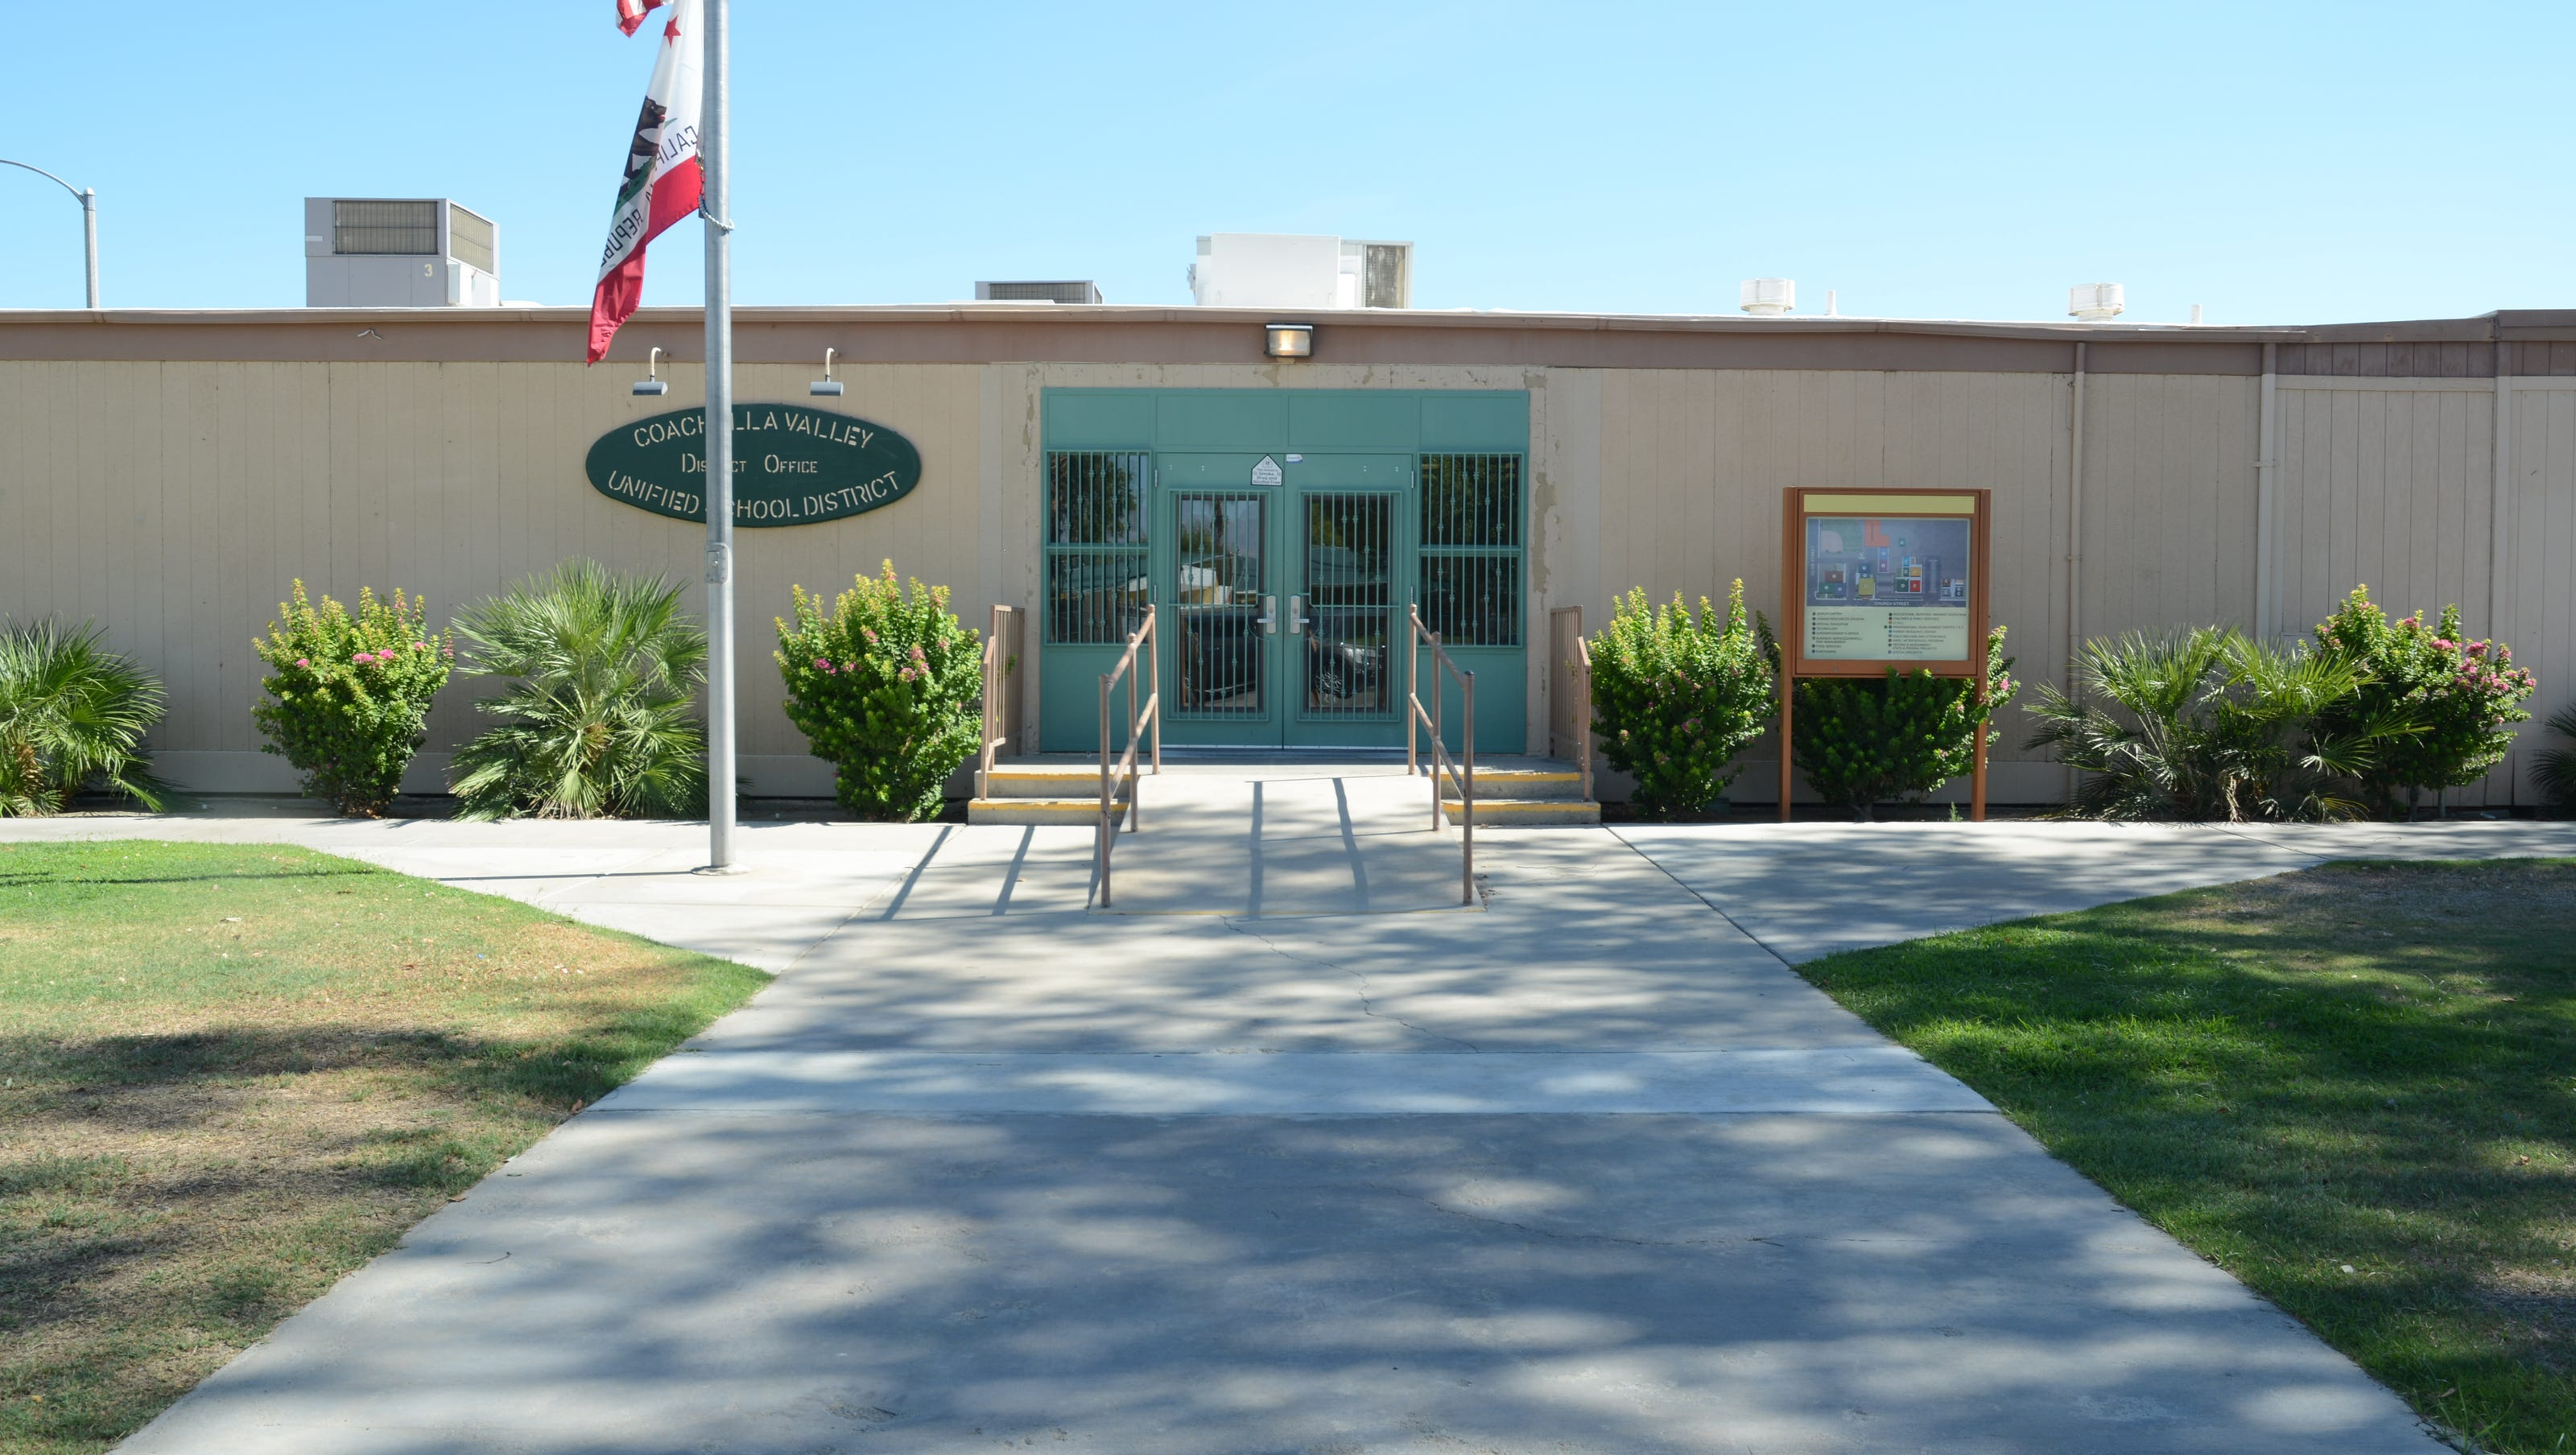 Students celebrating Mexican heritage at La Quinta library told to sing 'Yankee Doodle' instead